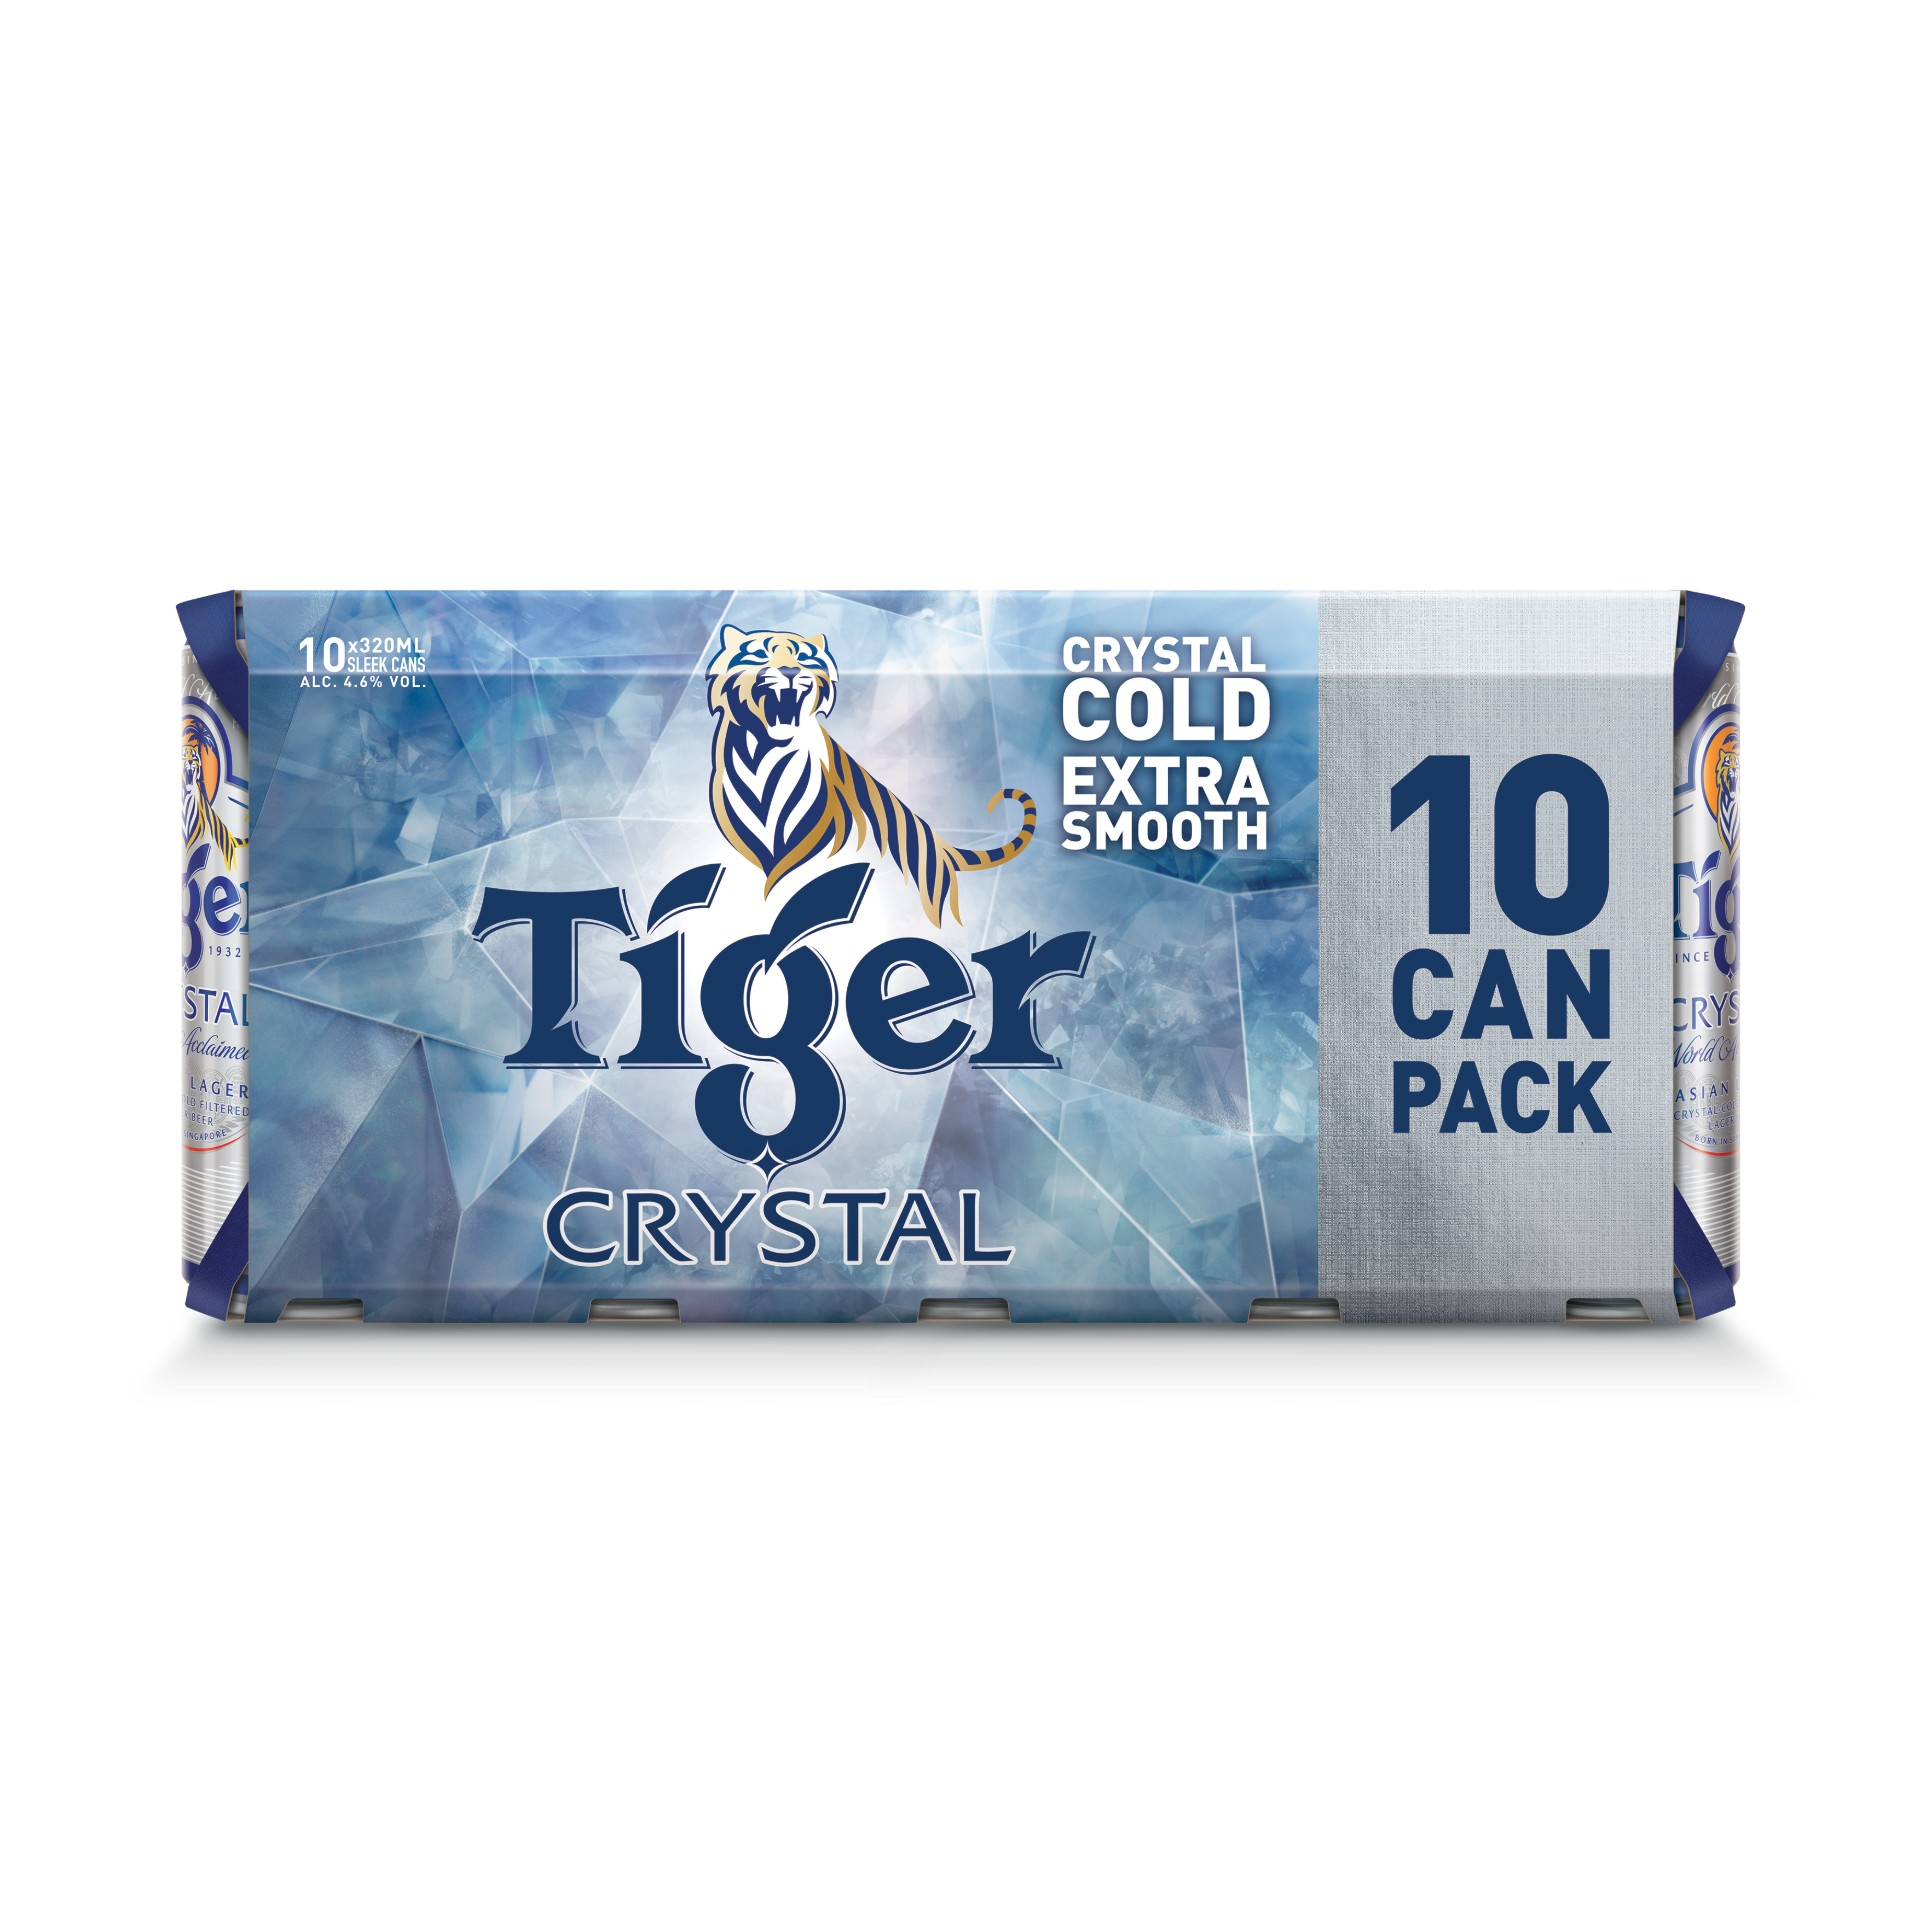 TIGER crystal can